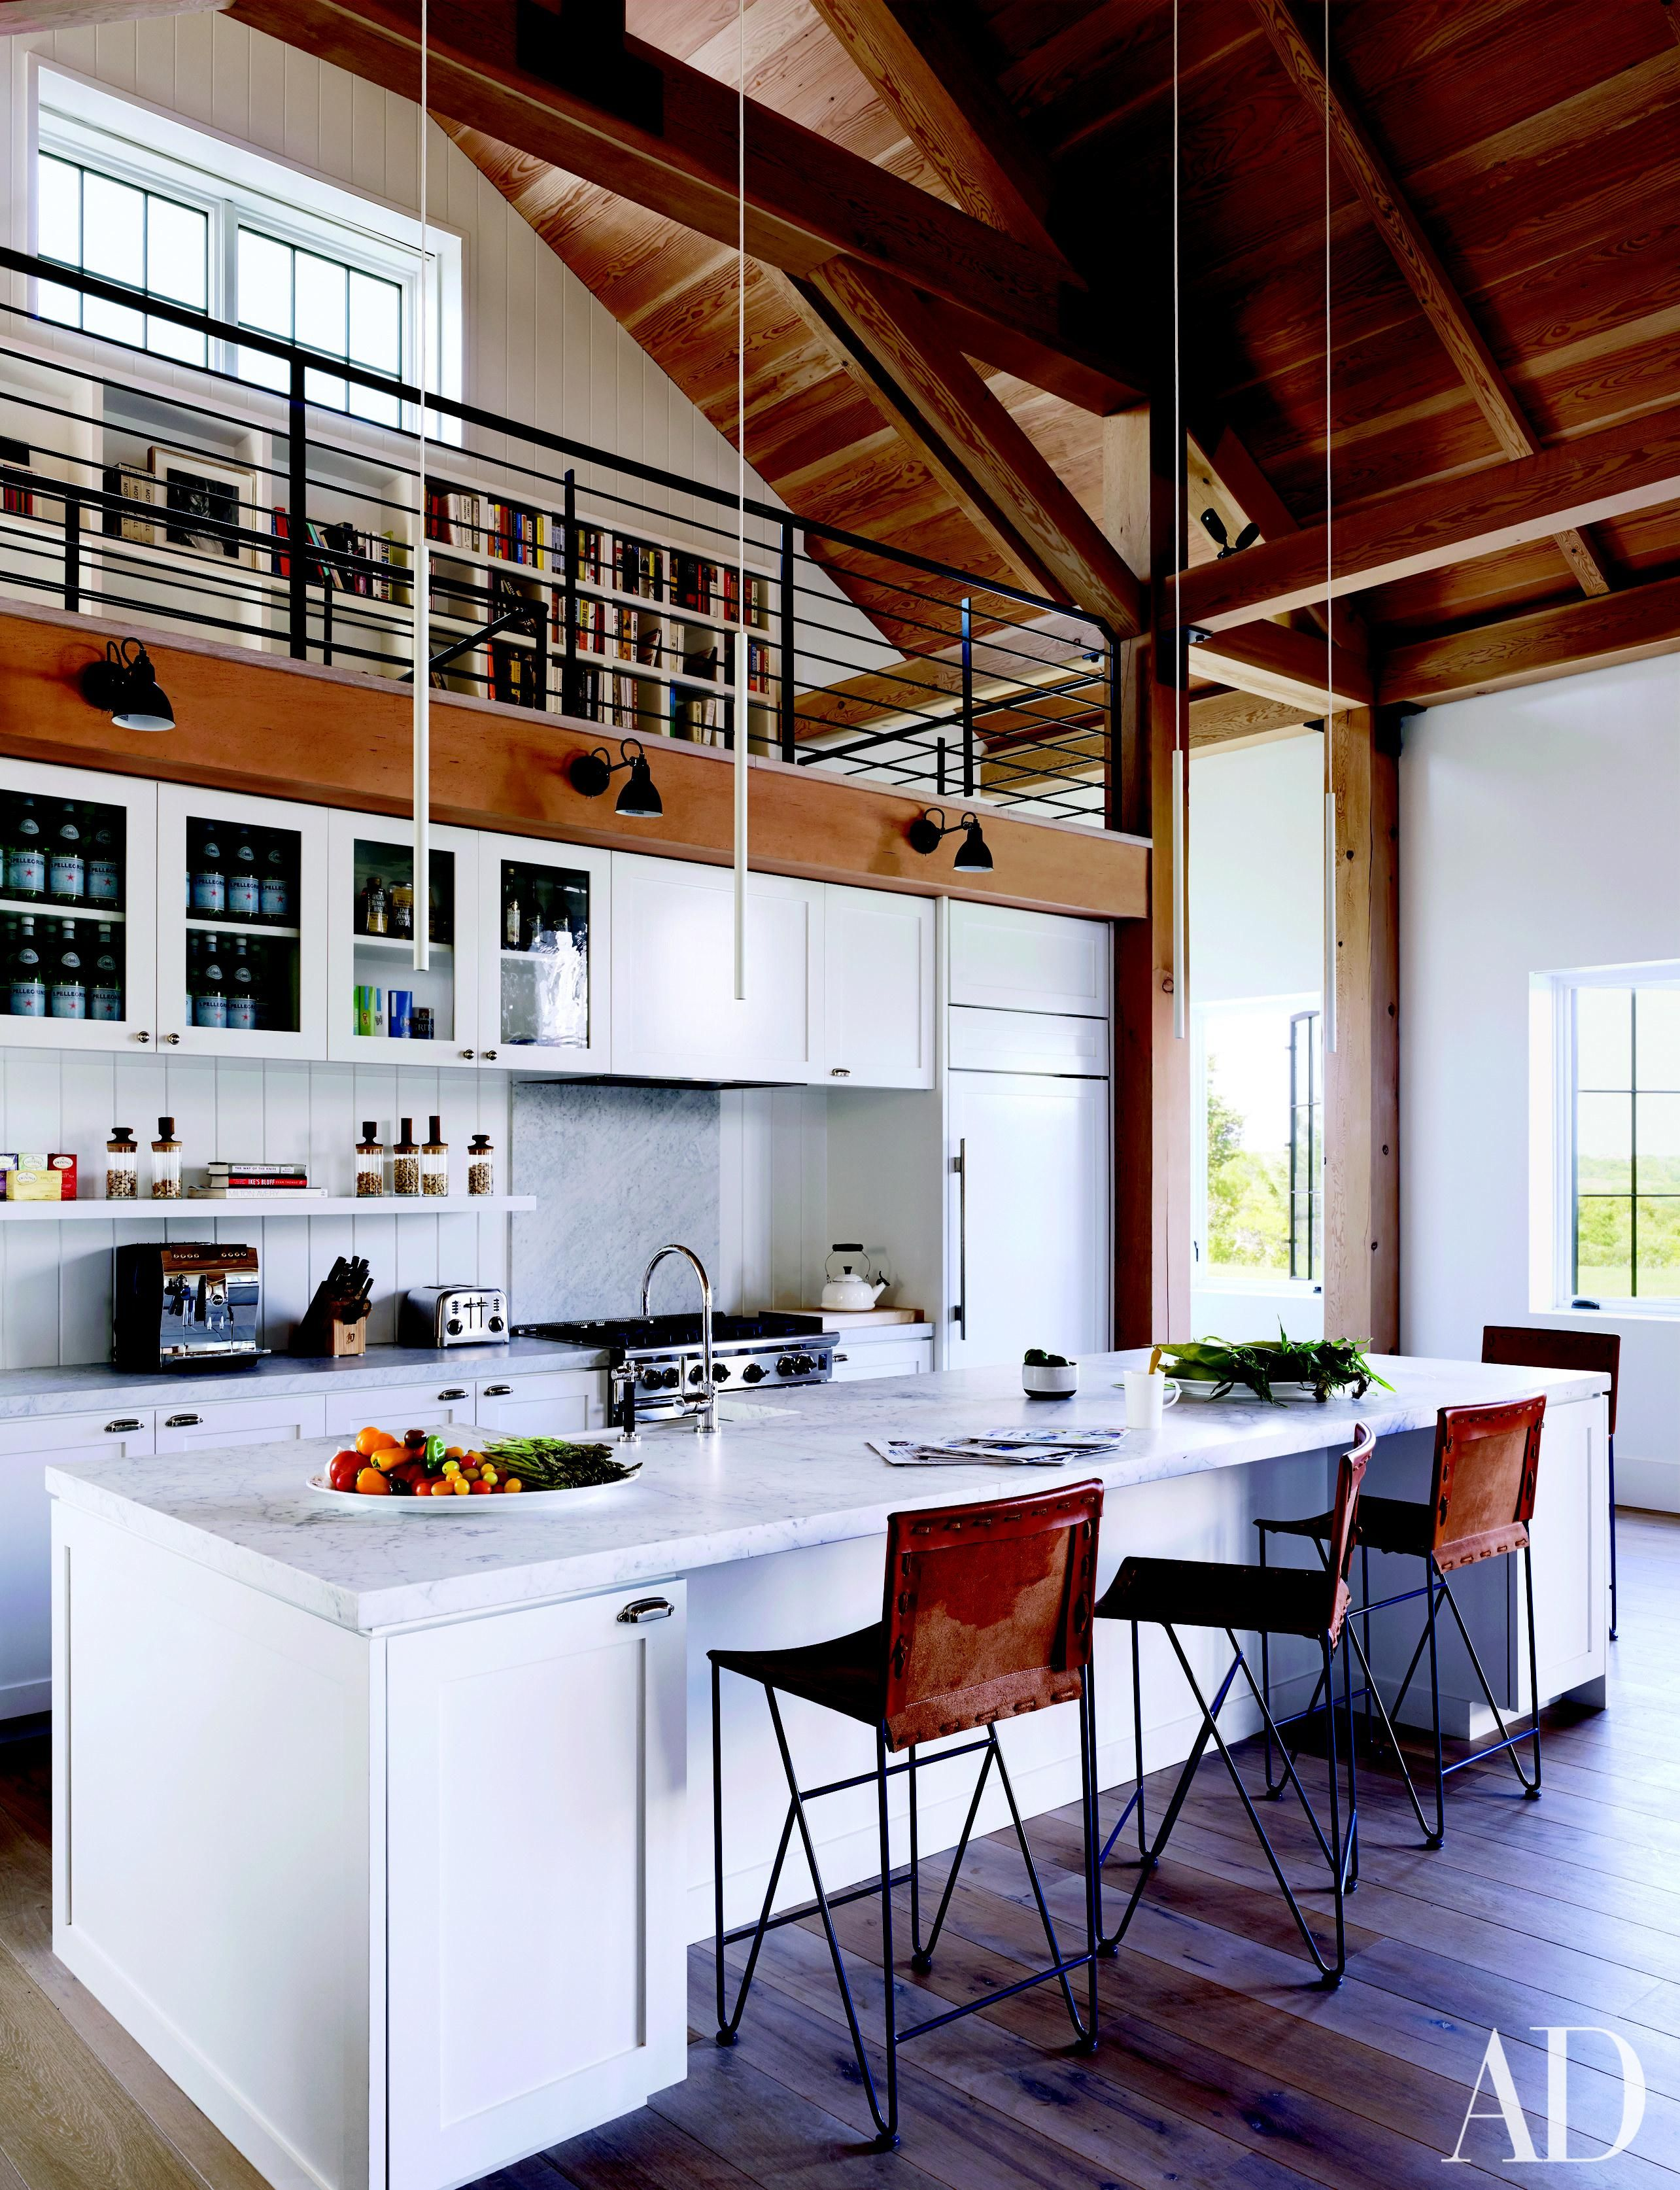 Get The Look Of This Modern Beach-House Kitchen By Ashe